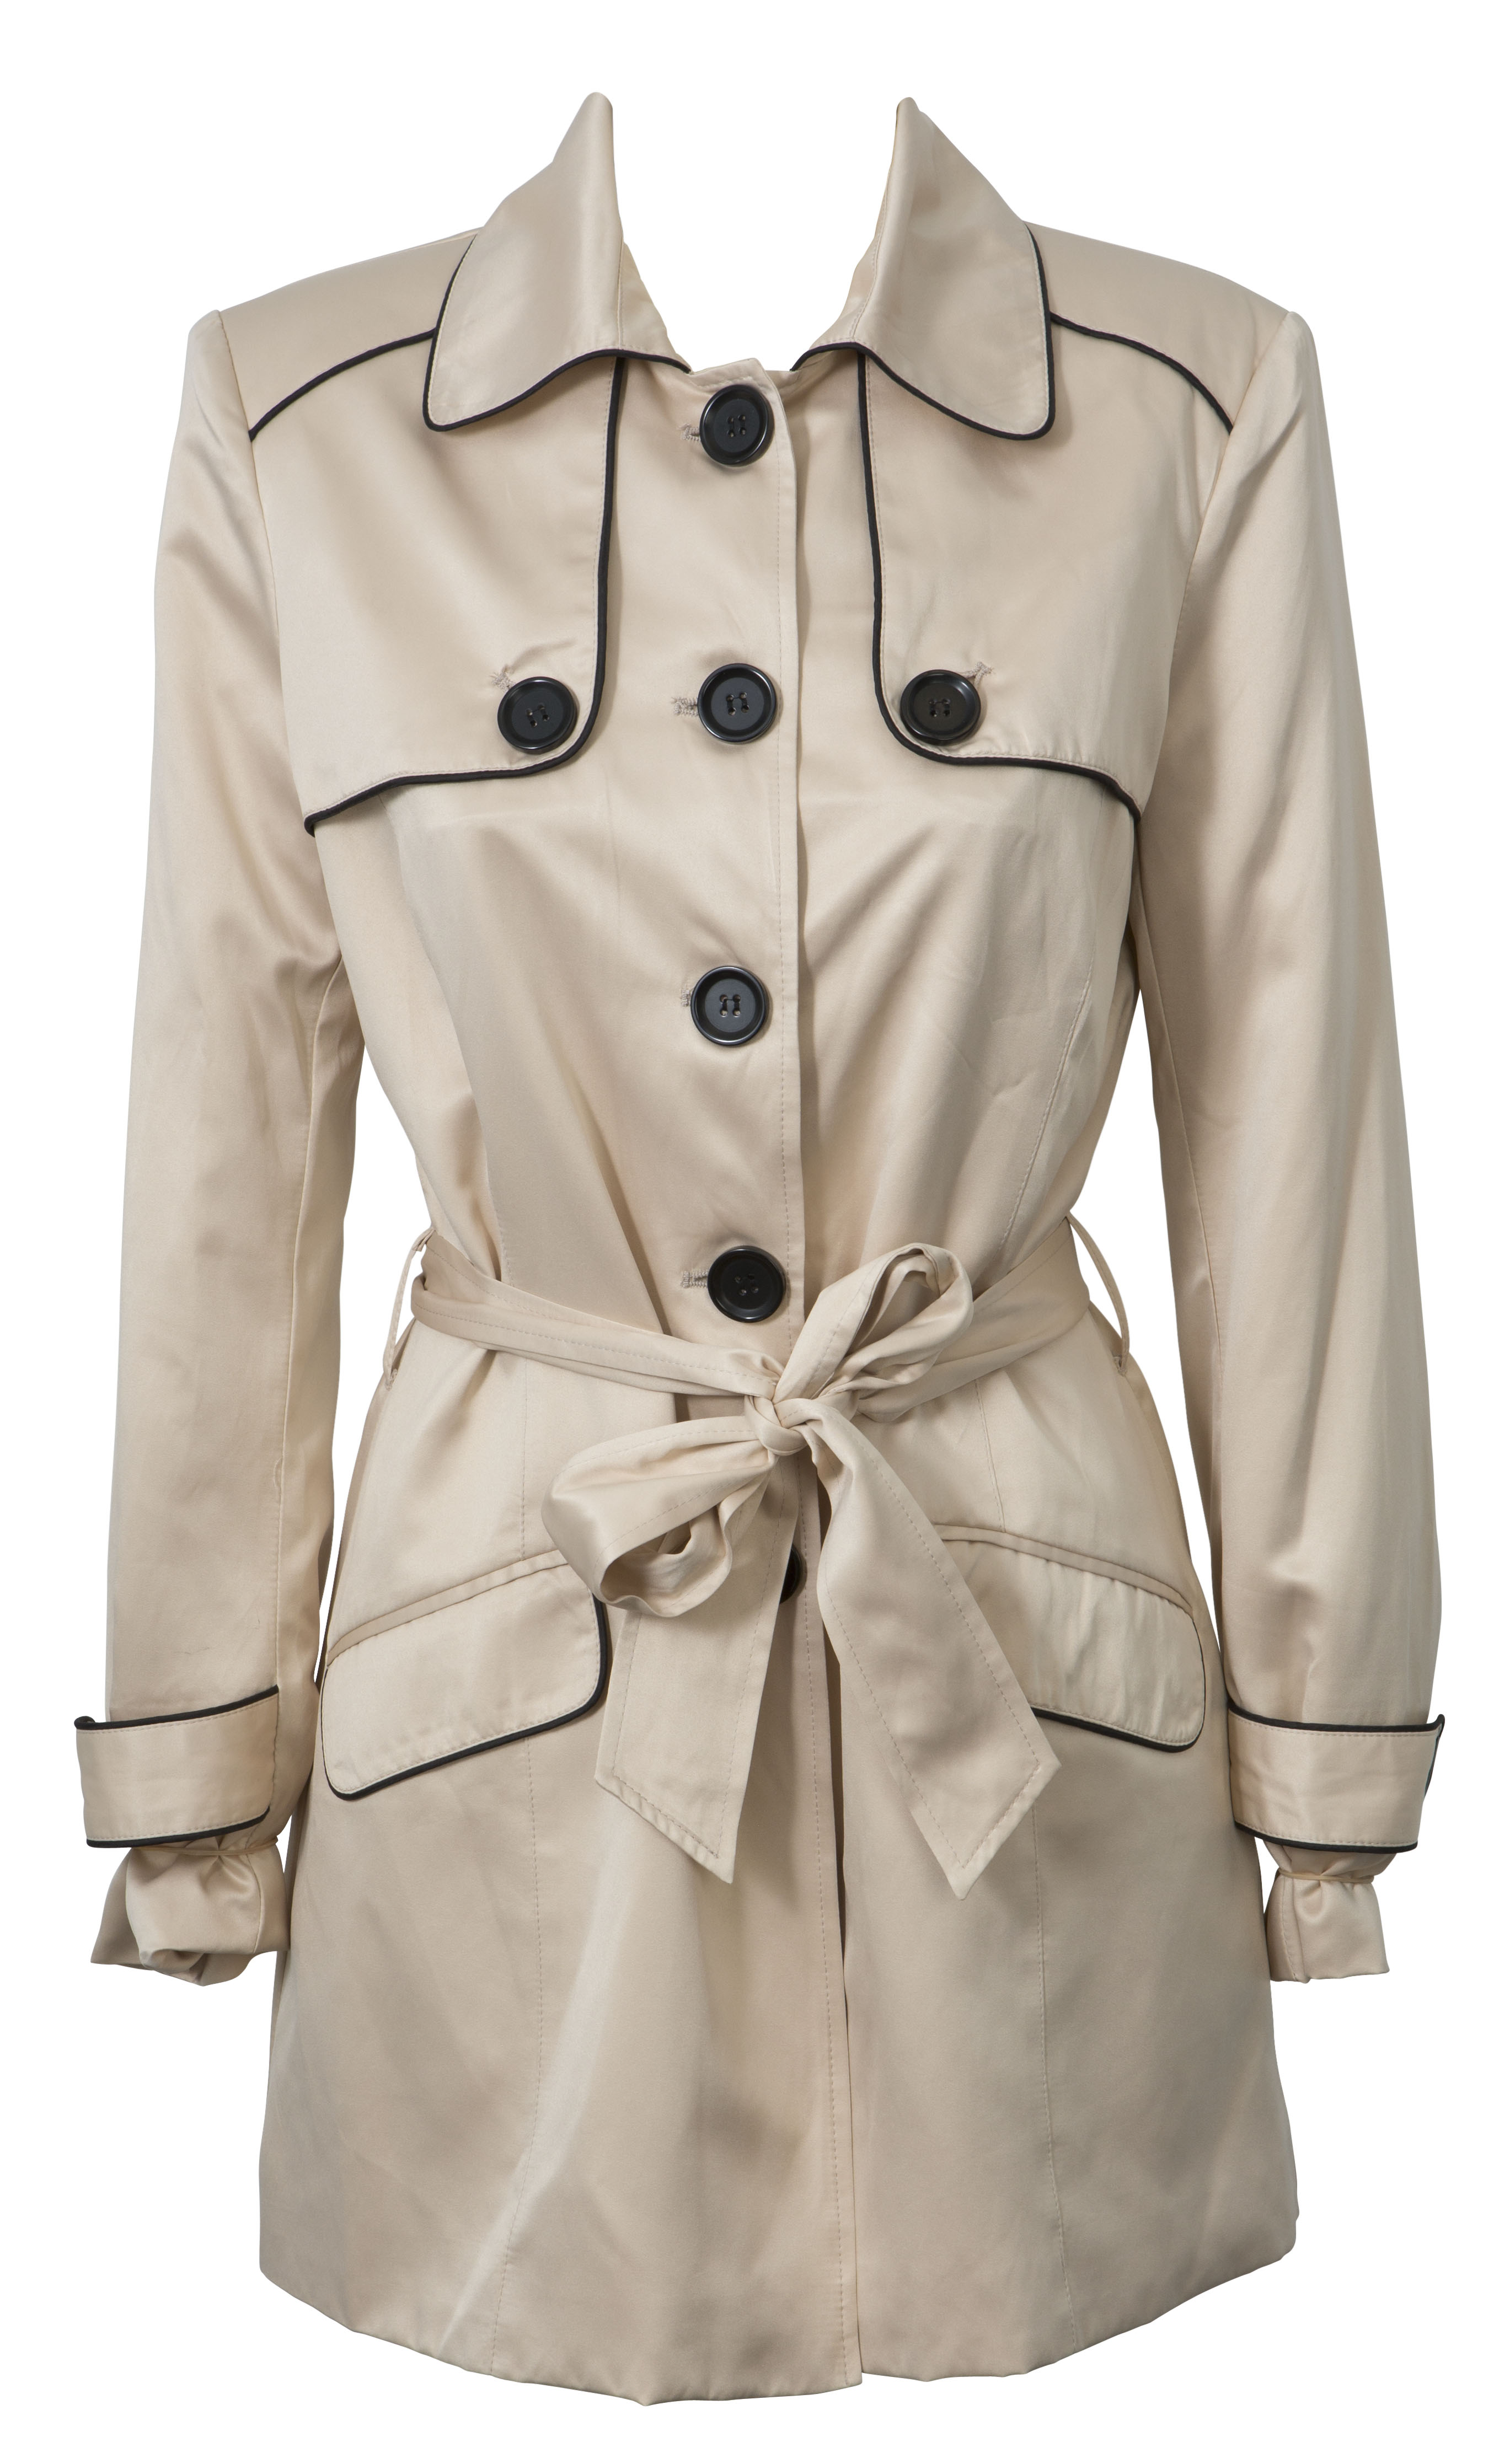 Oliver Black Trench Coat, $129.99, Inst March